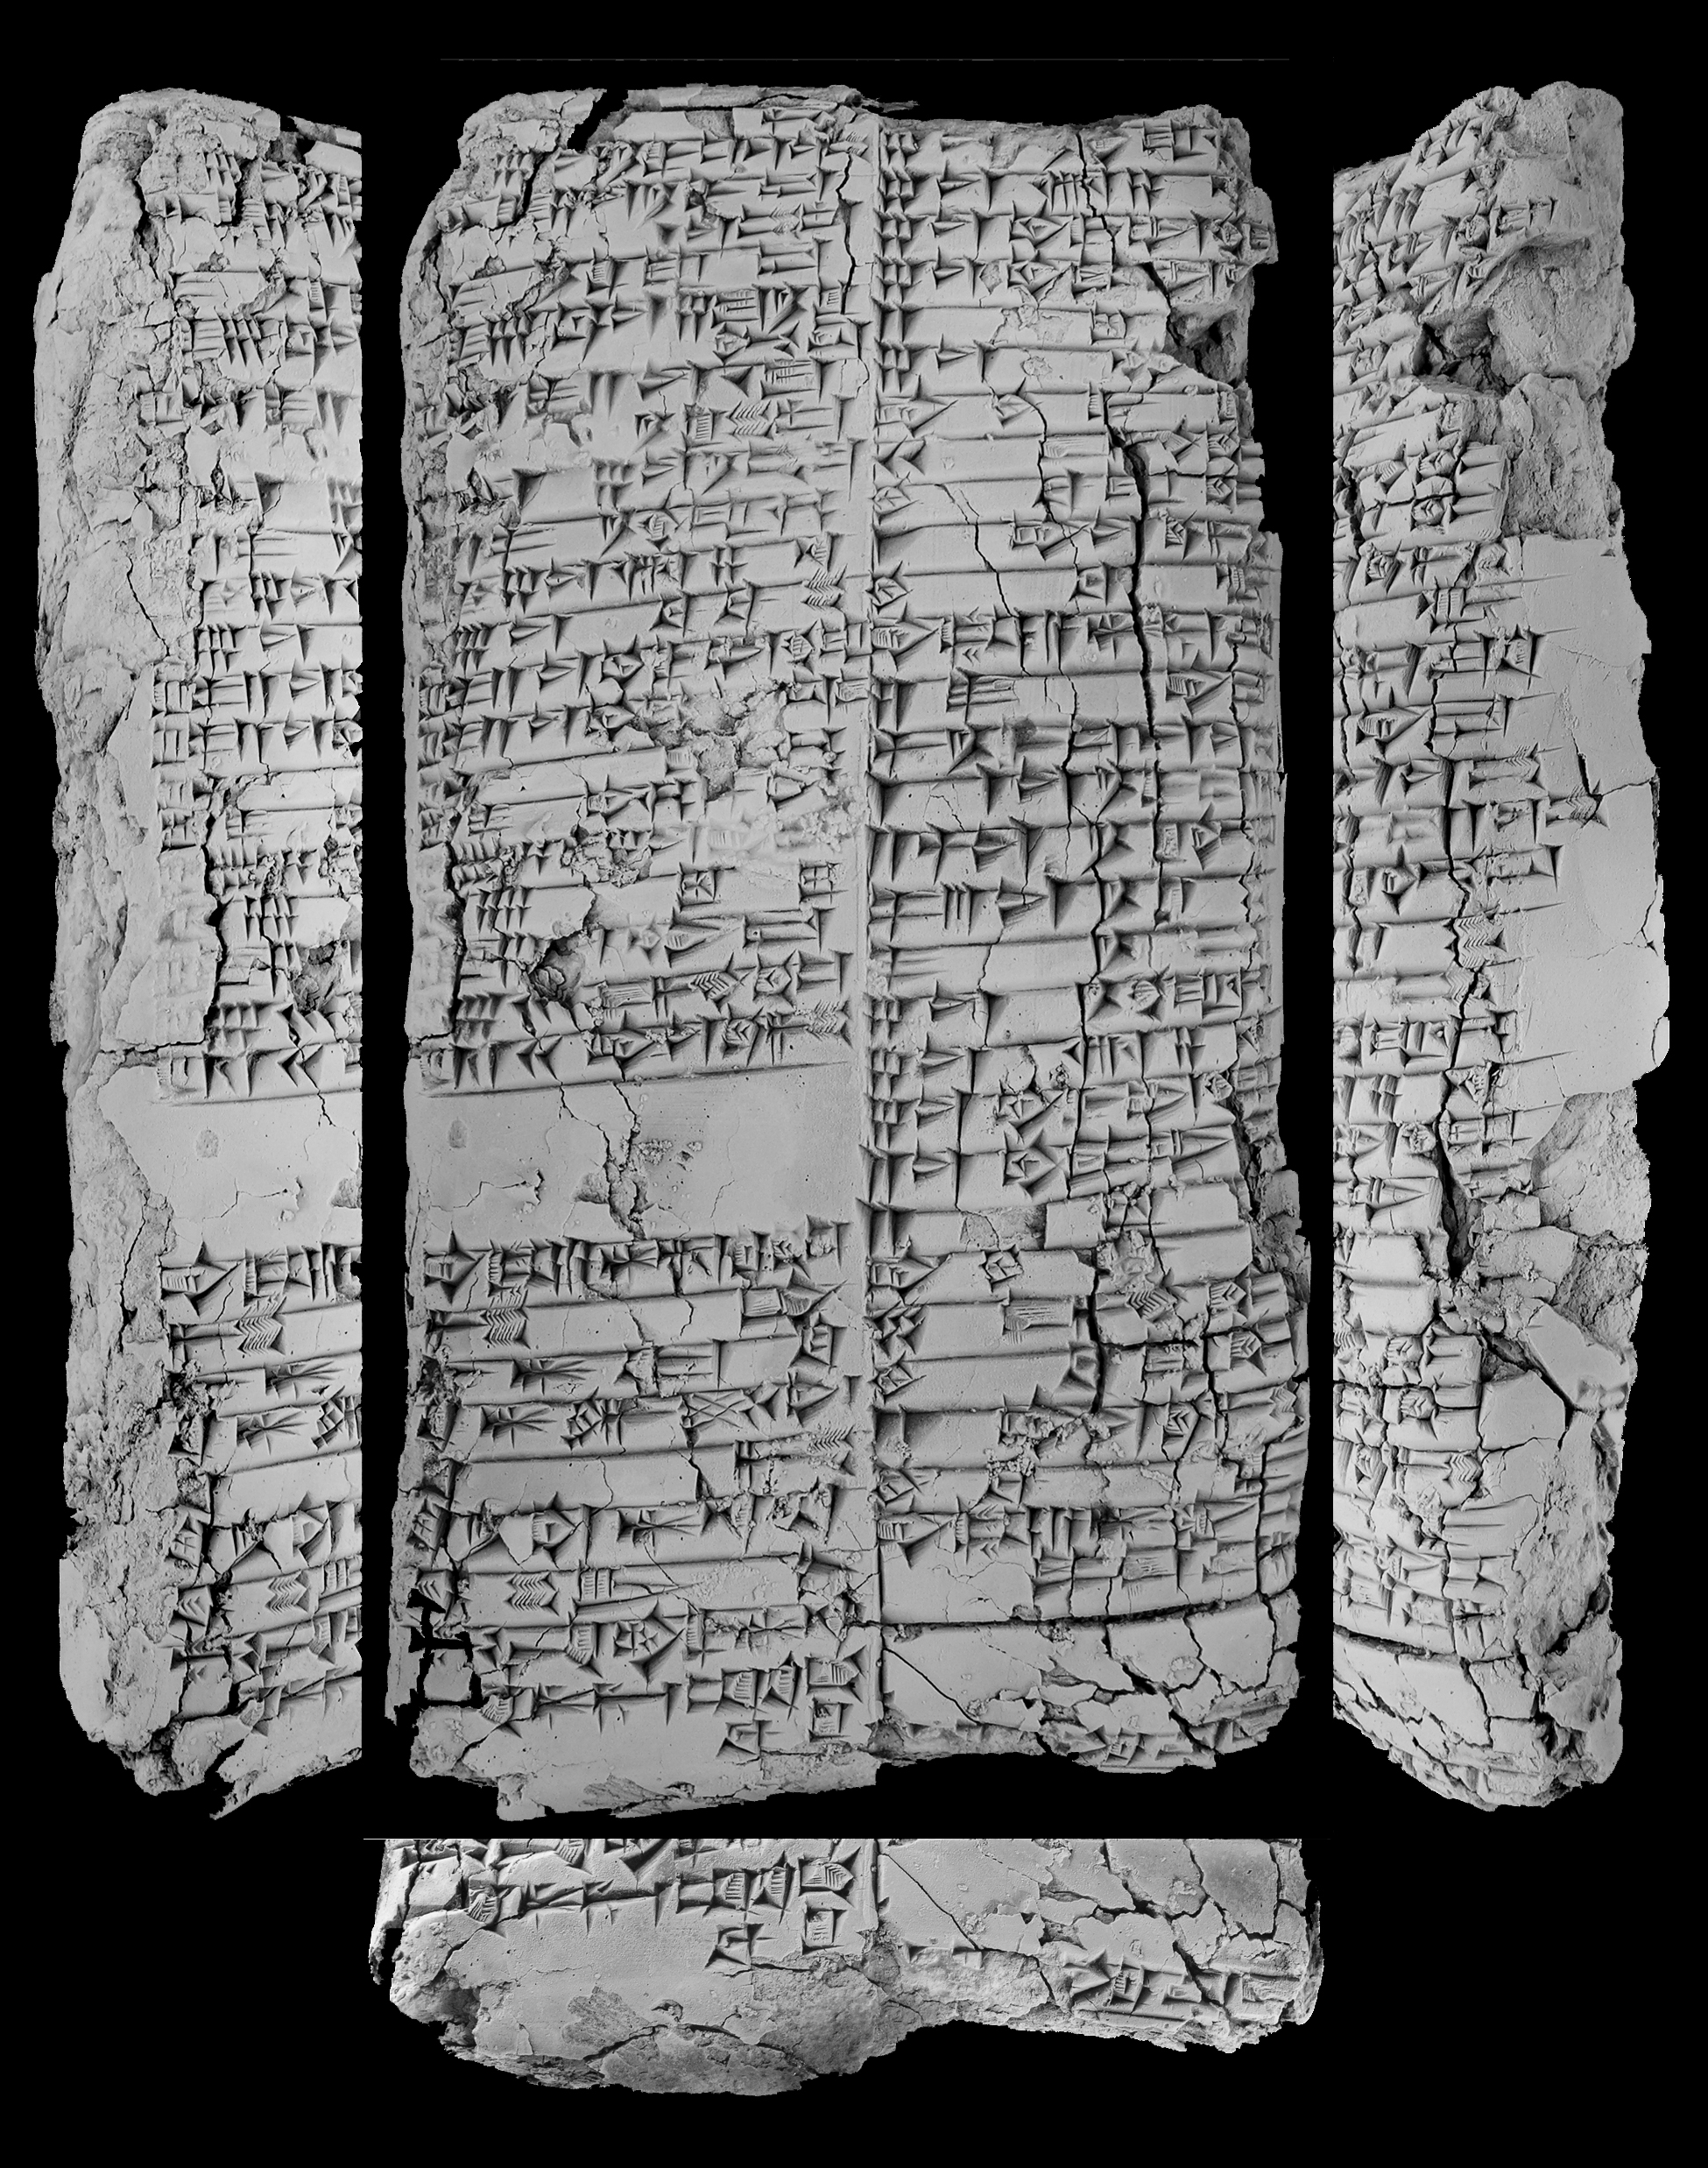 Cuneiform tablets chasing aphrodite the rosen connection cornell will return 10000 cuneiform tablets to iraq publicscrutiny Choice Image